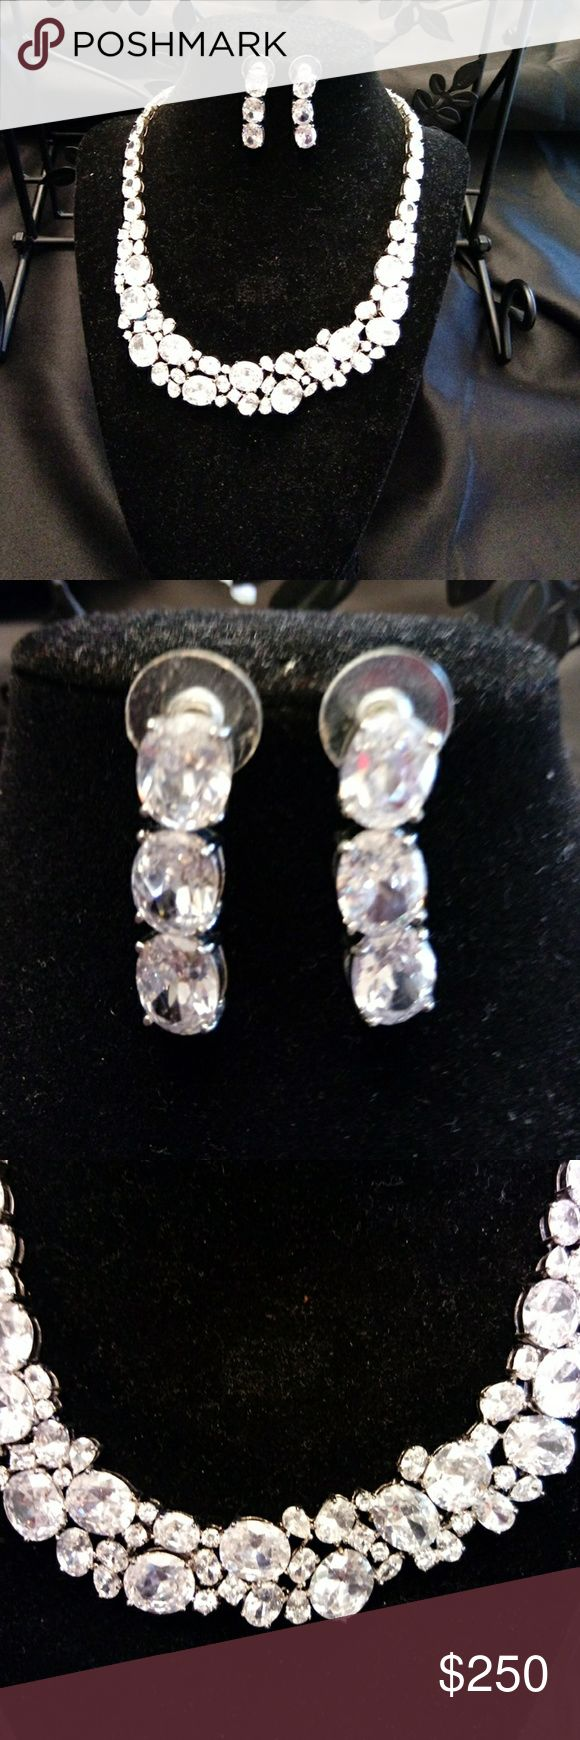 """Neclace 16""""length, earrings 1 1/4 long, earrings drop 3/4 long. Earrings are post with 3 CZ stones each. Necklace has a double lock on back. Cubic Zirconia Jewelry Necklaces"""